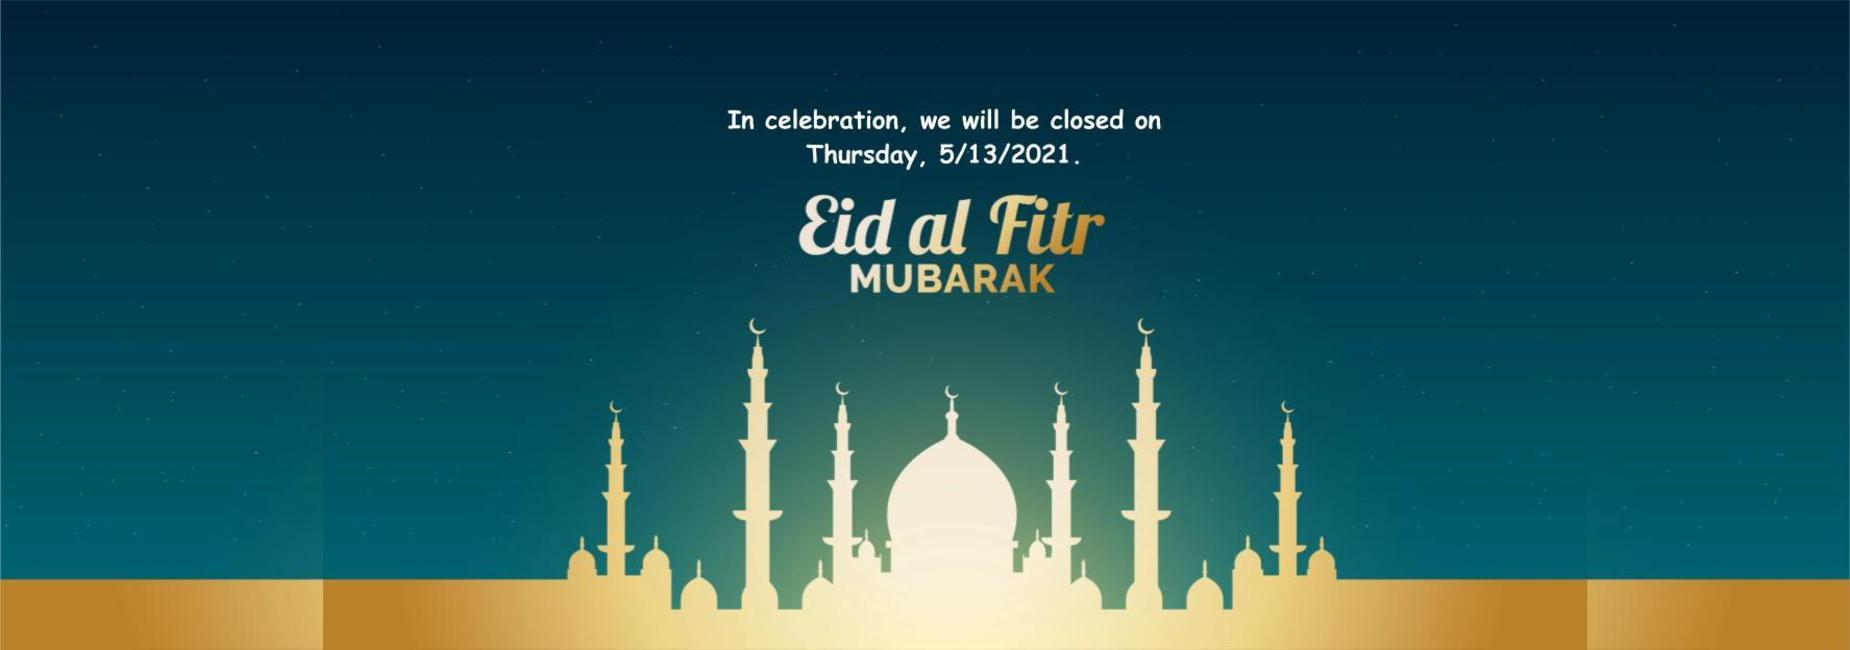 In celebration, we will be closed on  Thursday, 5/13/2021 for Eid al Fitr